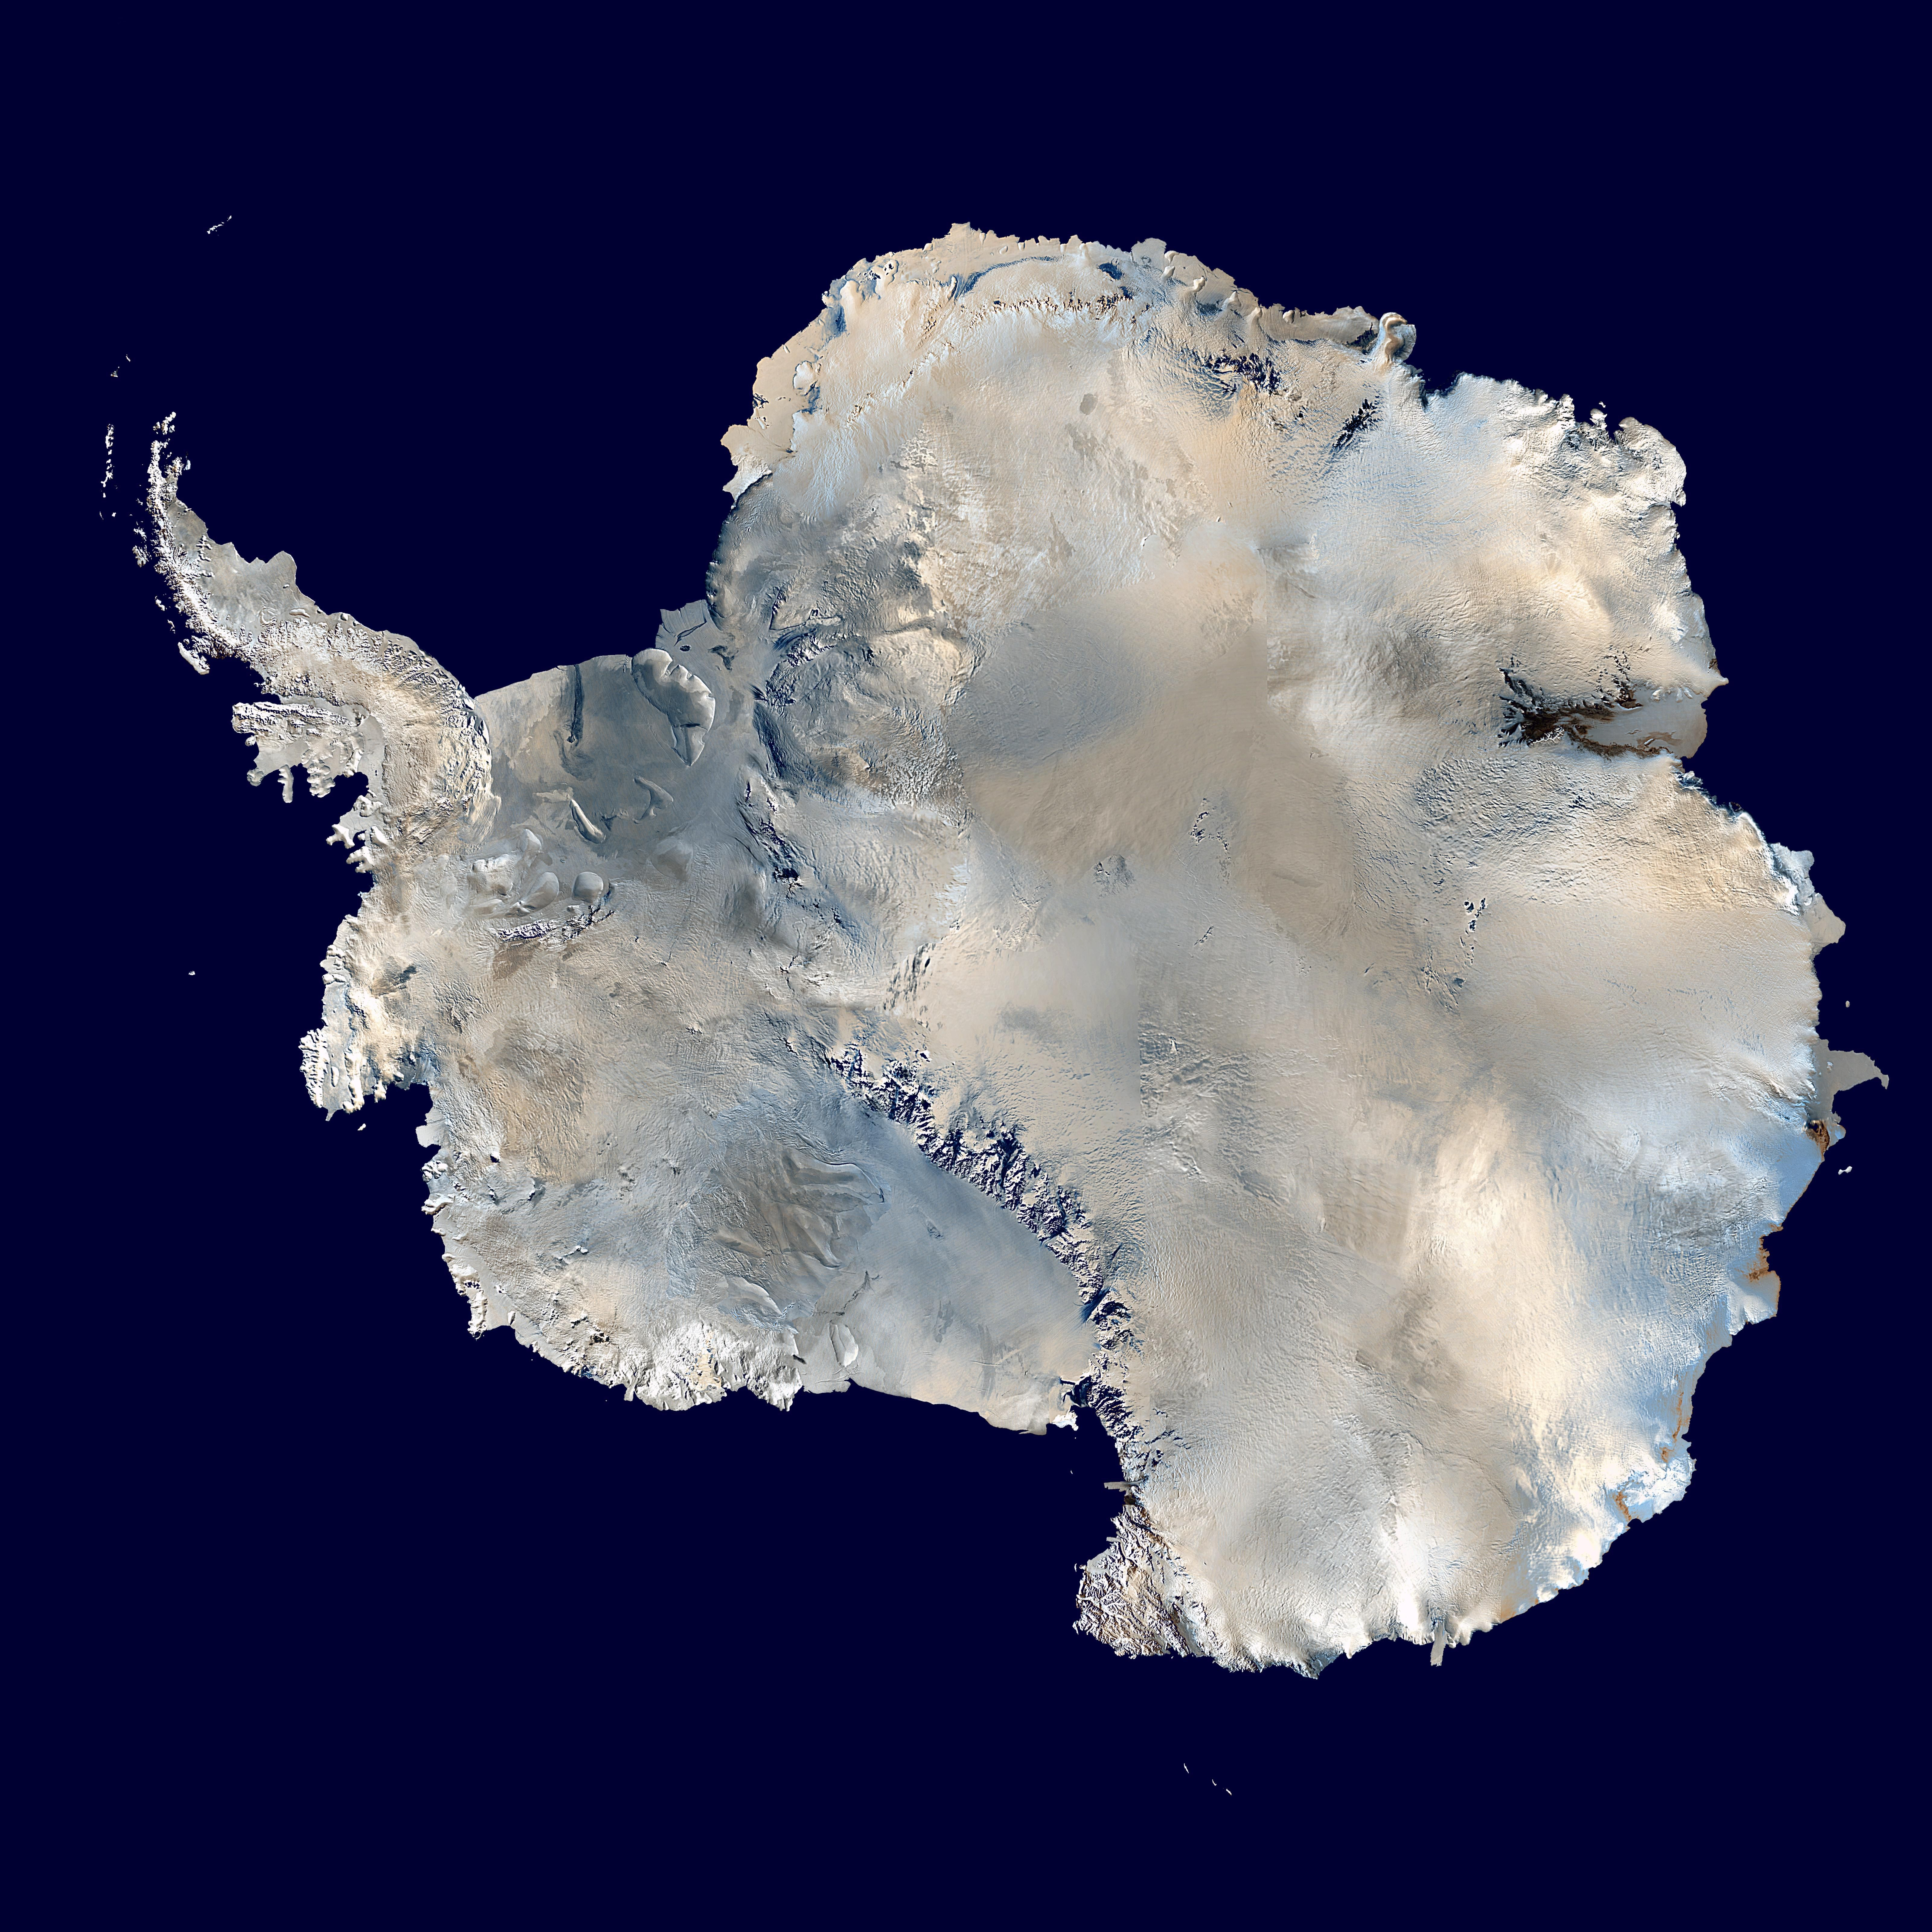 Fantastic Photo Of Antarctica Without Clouds From Blue Marble Coldest Place On Earth Antarctica Earth